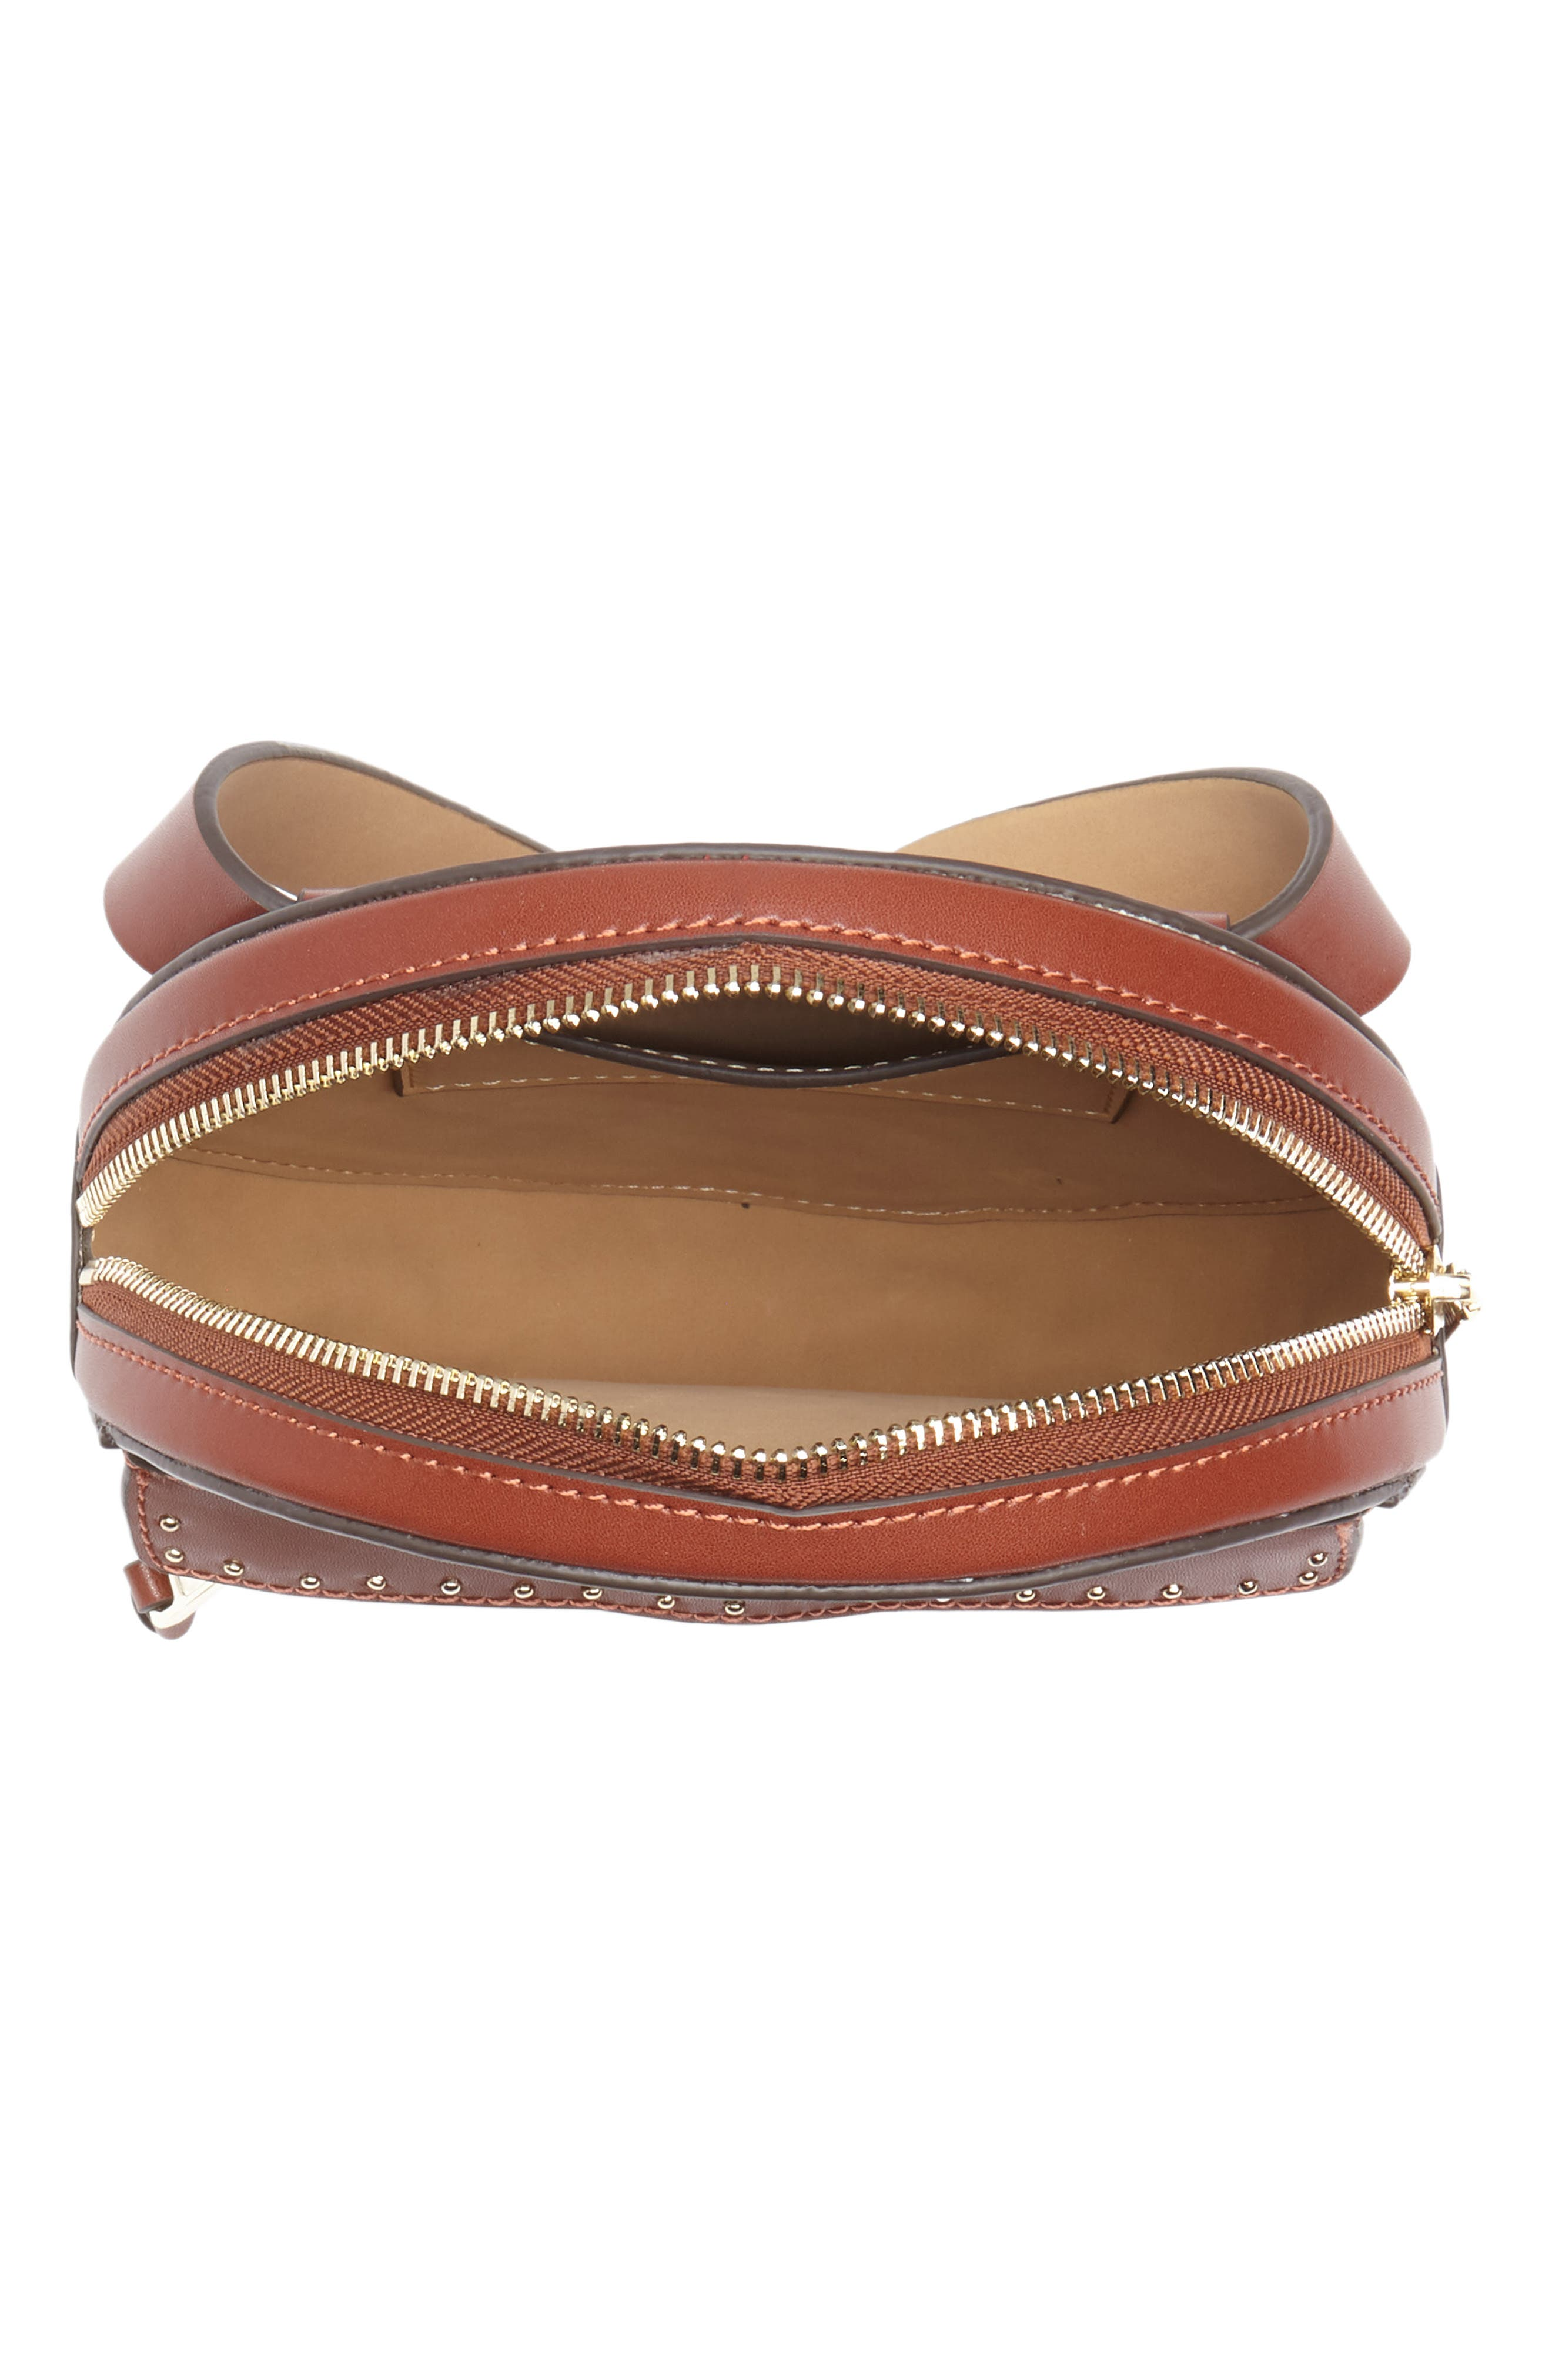 Lucy Leather Belt Bag,                             Alternate thumbnail 4, color,                             LUGGAGE